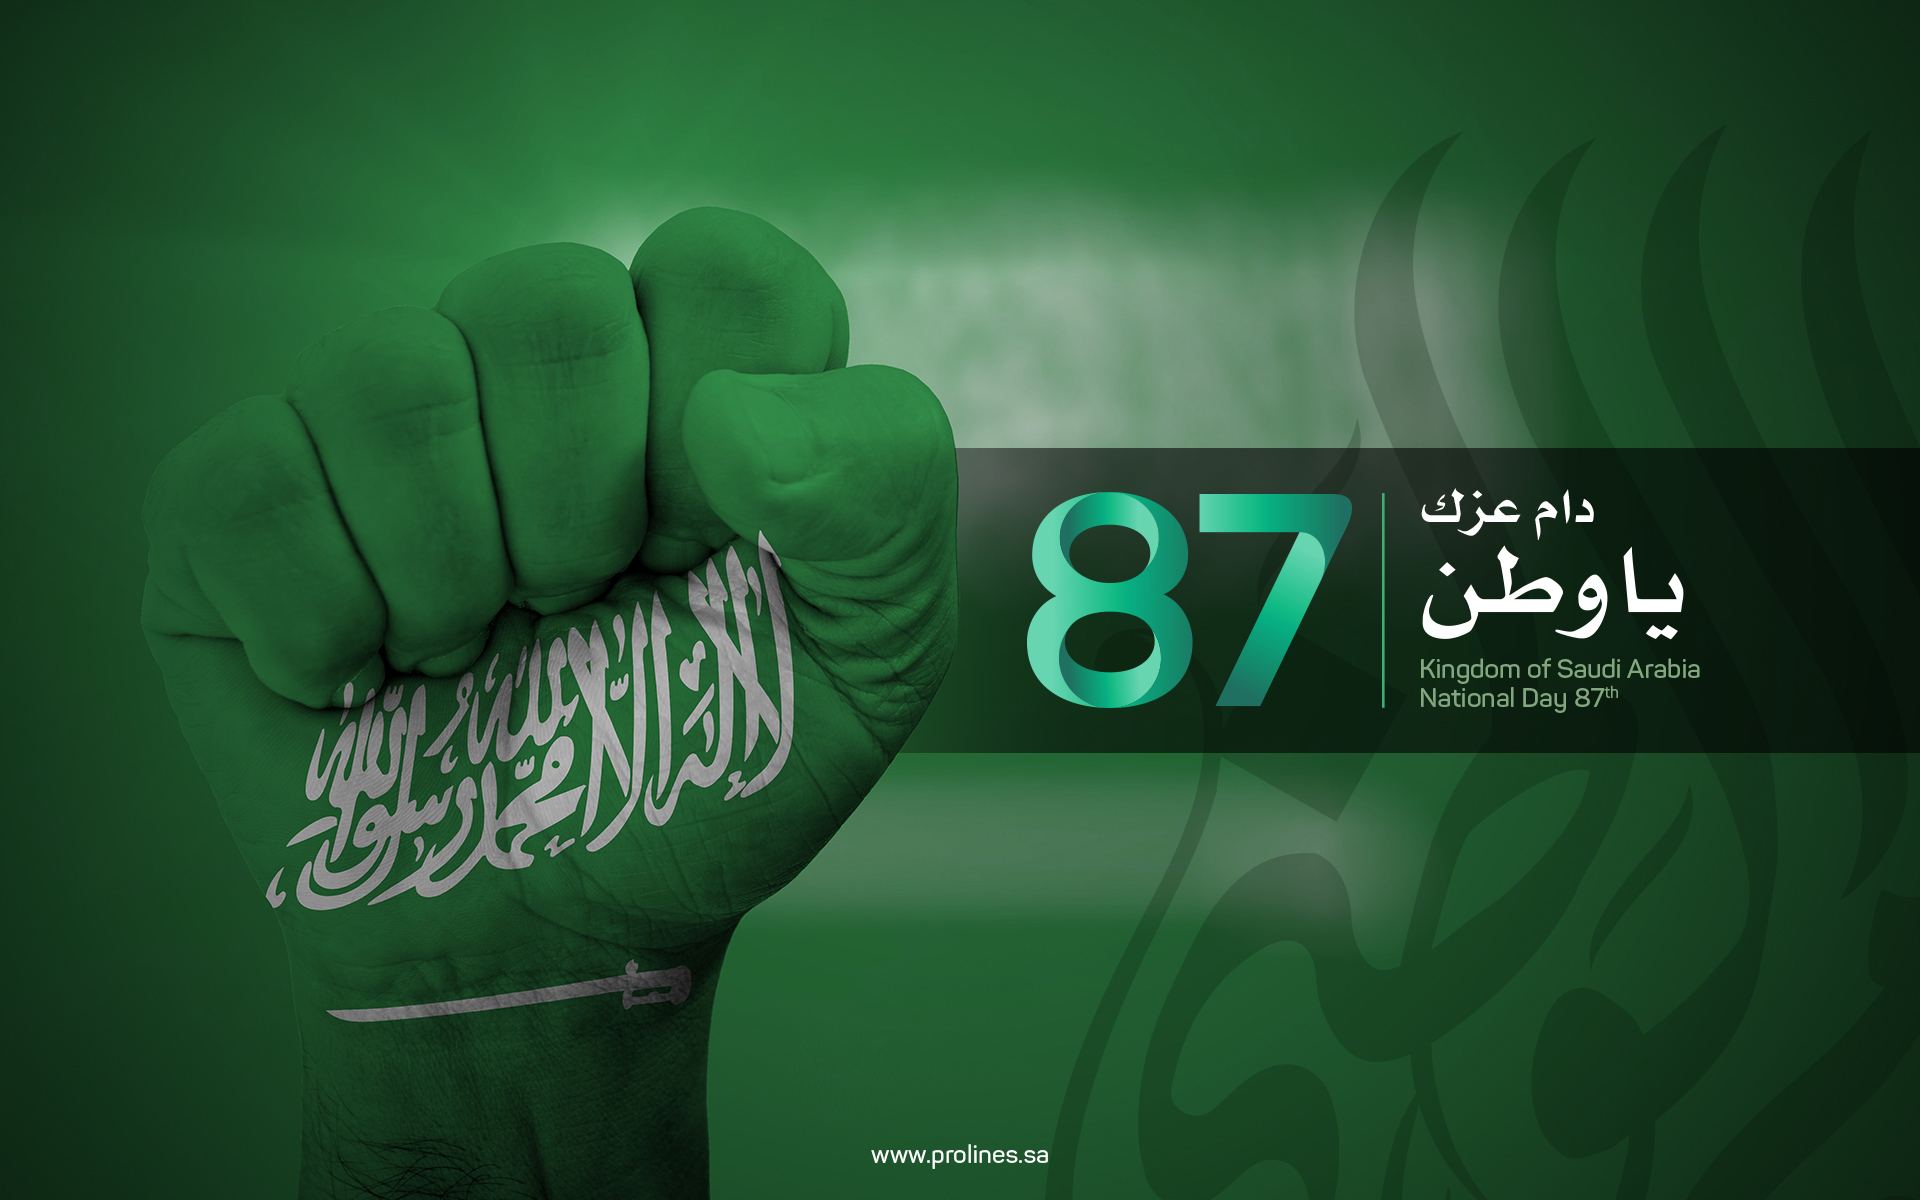 Saudi National Day 2017 Wallpapers Prolines